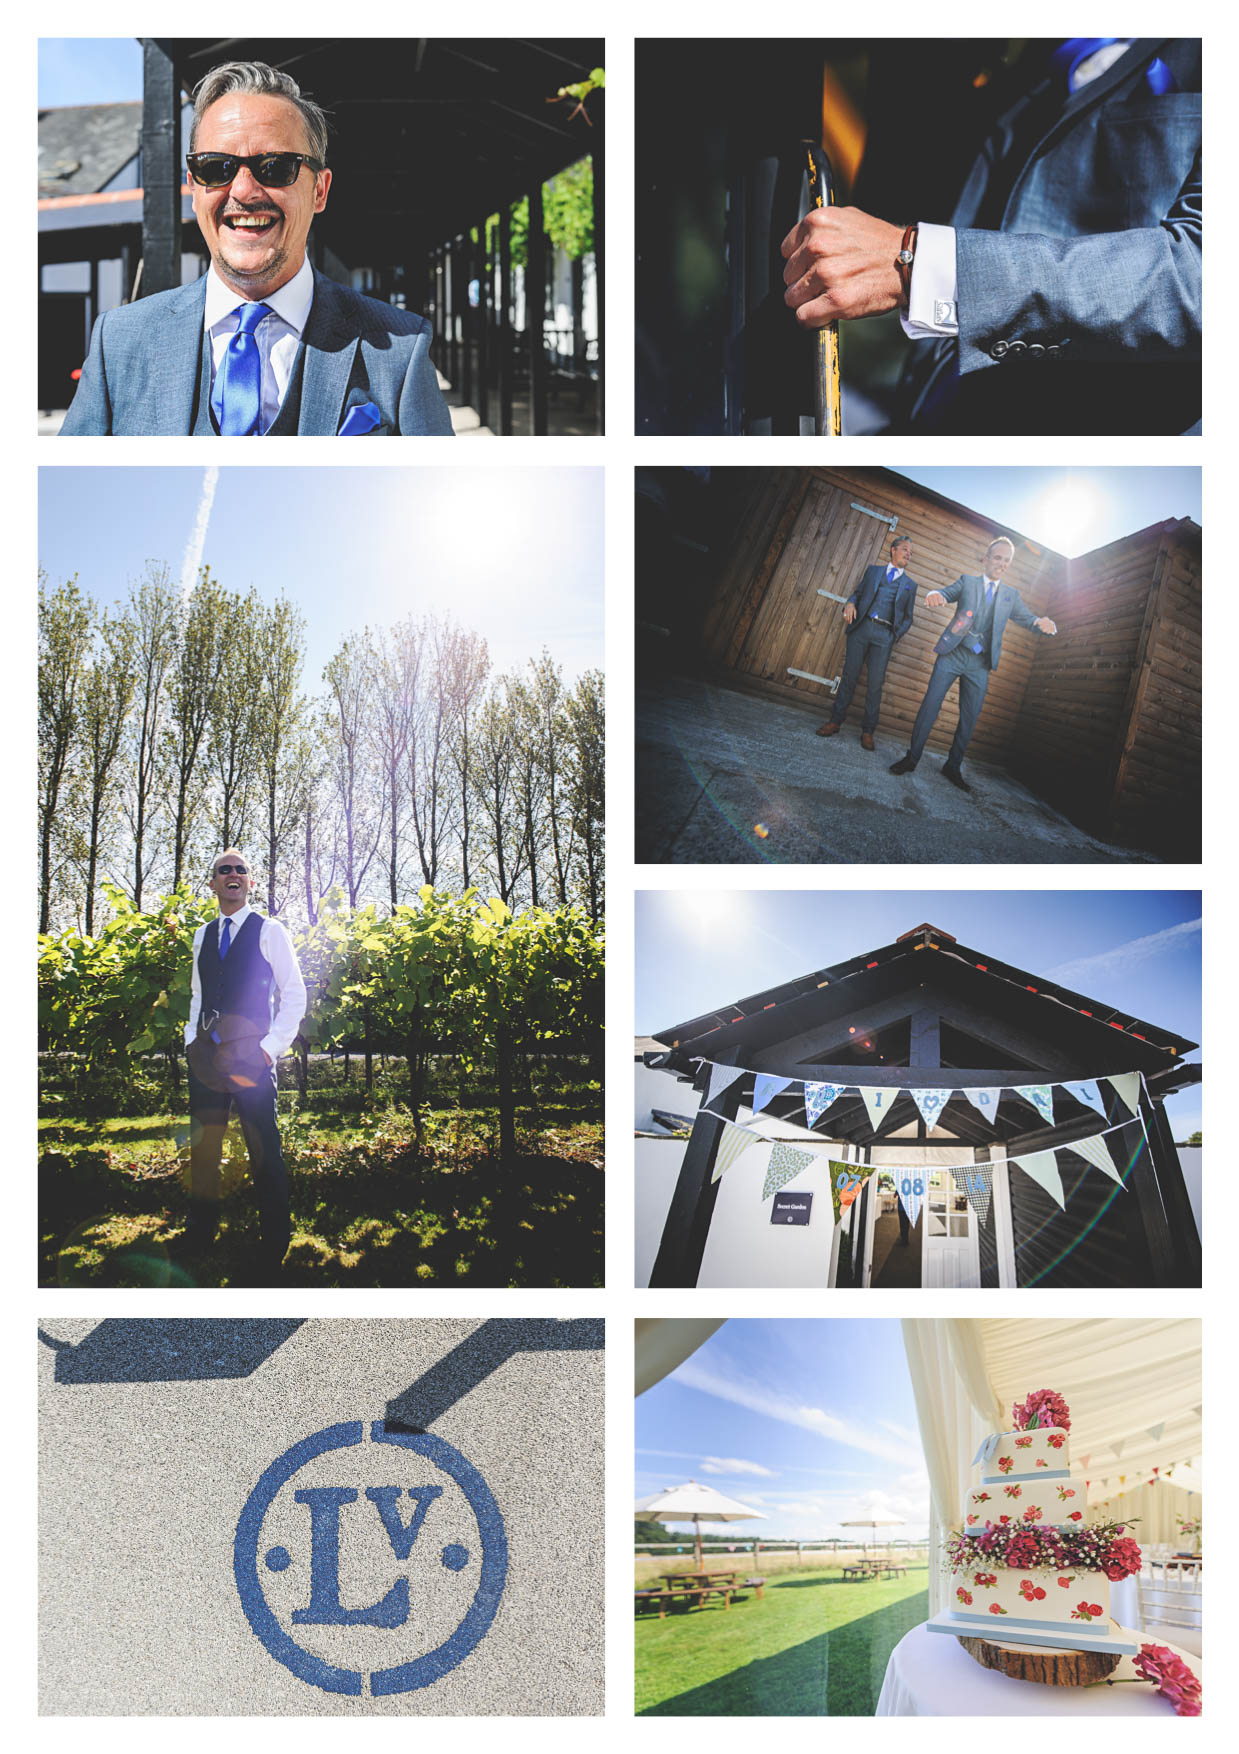 Photos of the groom and best man at llanerch vineyard before the wedding photographed by owen mathias